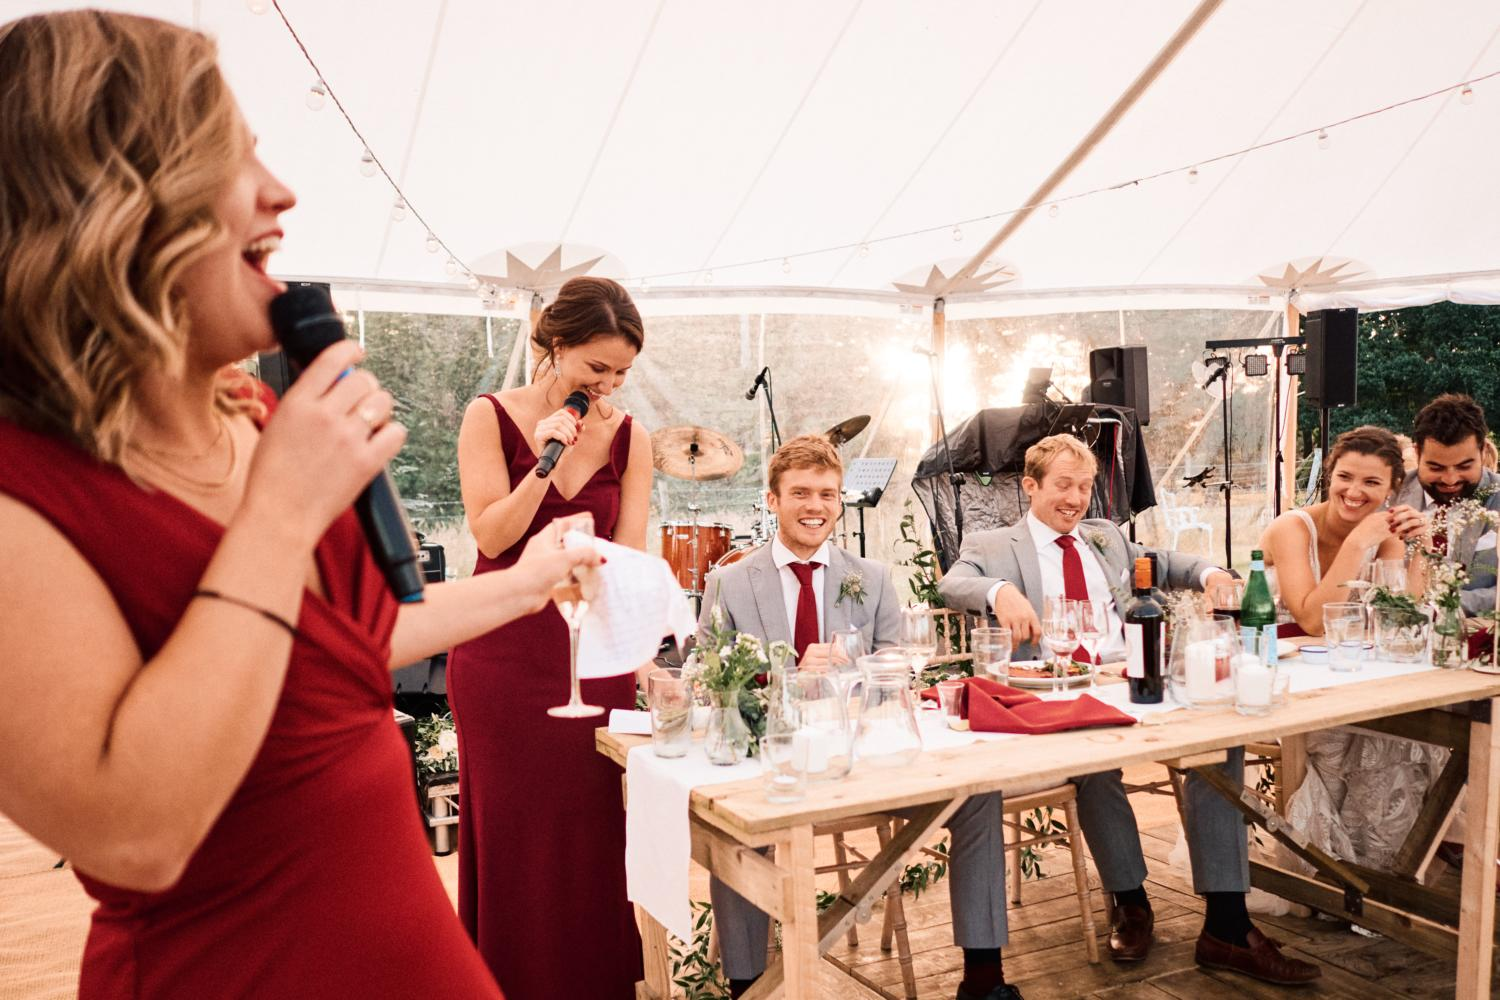 Sister of bride performs speeches in a marquee